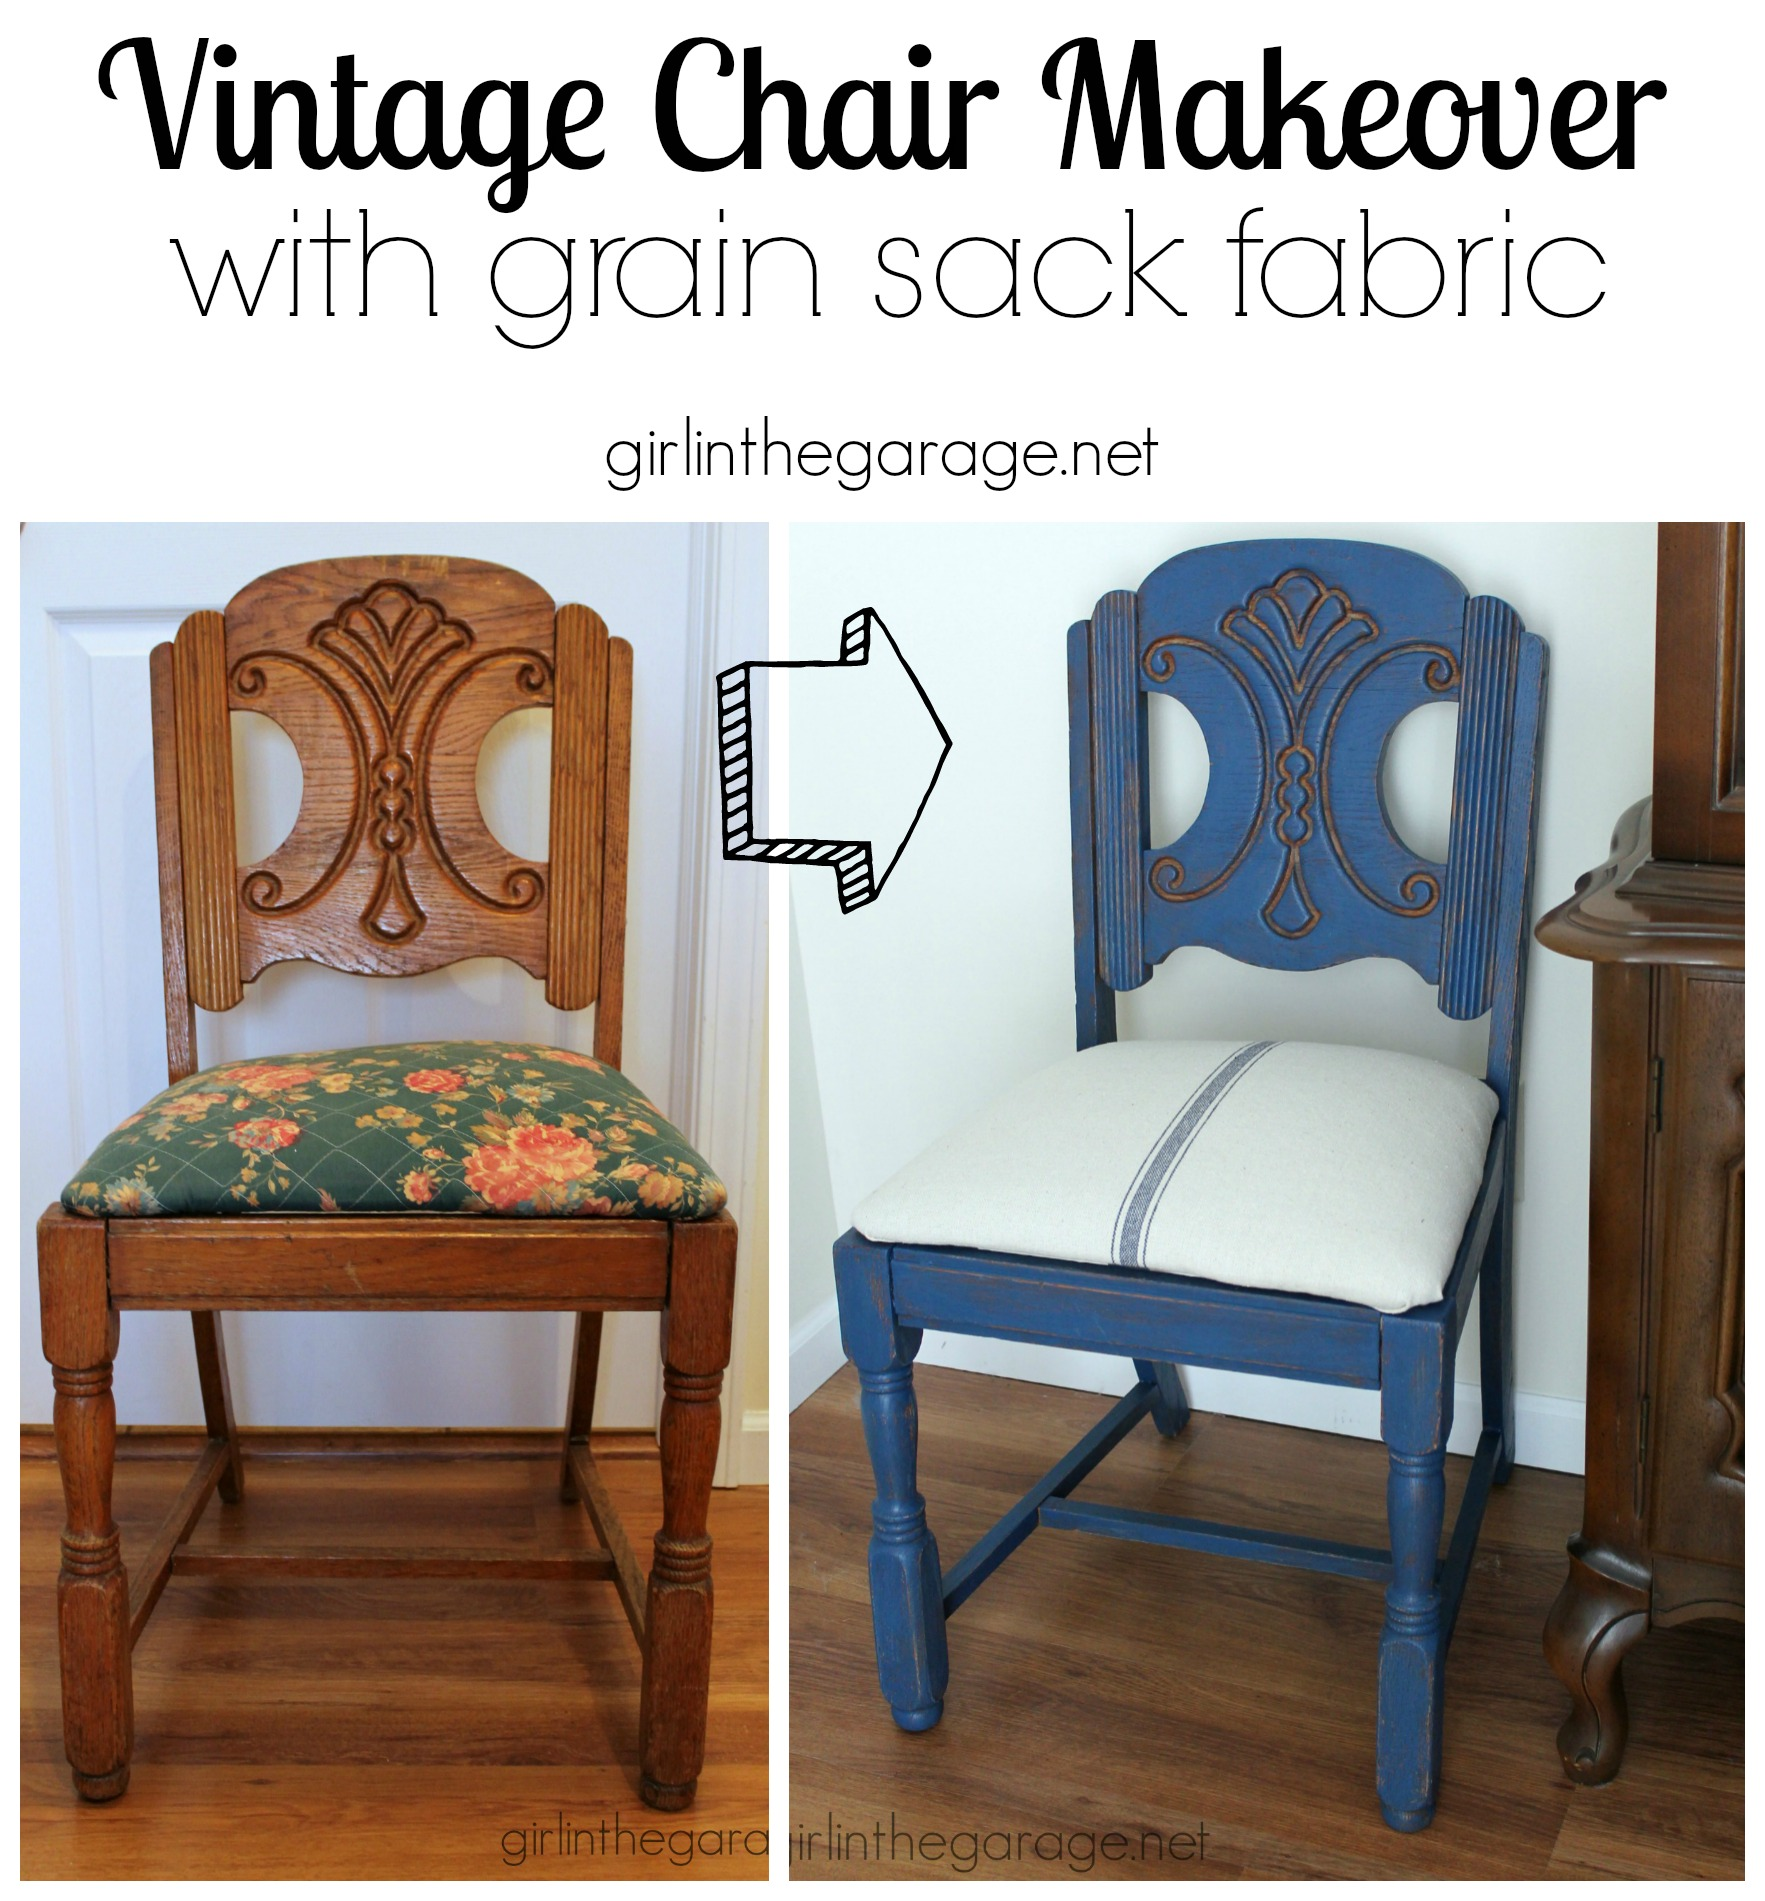 Blue Grain Sack Chair Makeover Themed Furniture